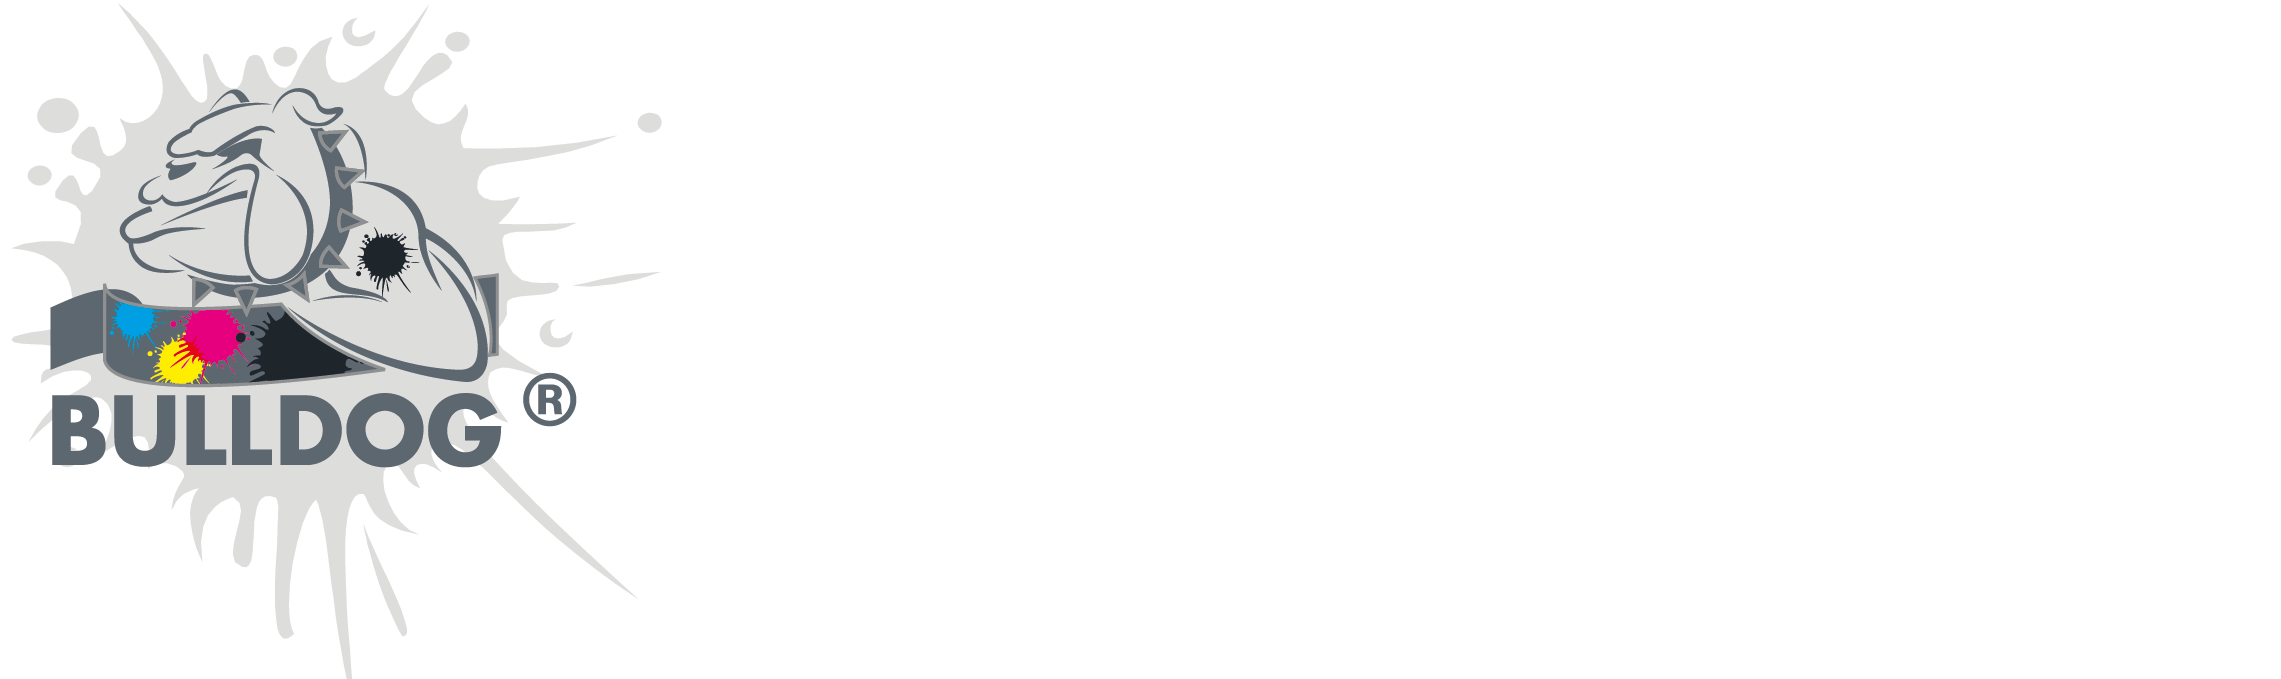 Bulldog Pte Ltd